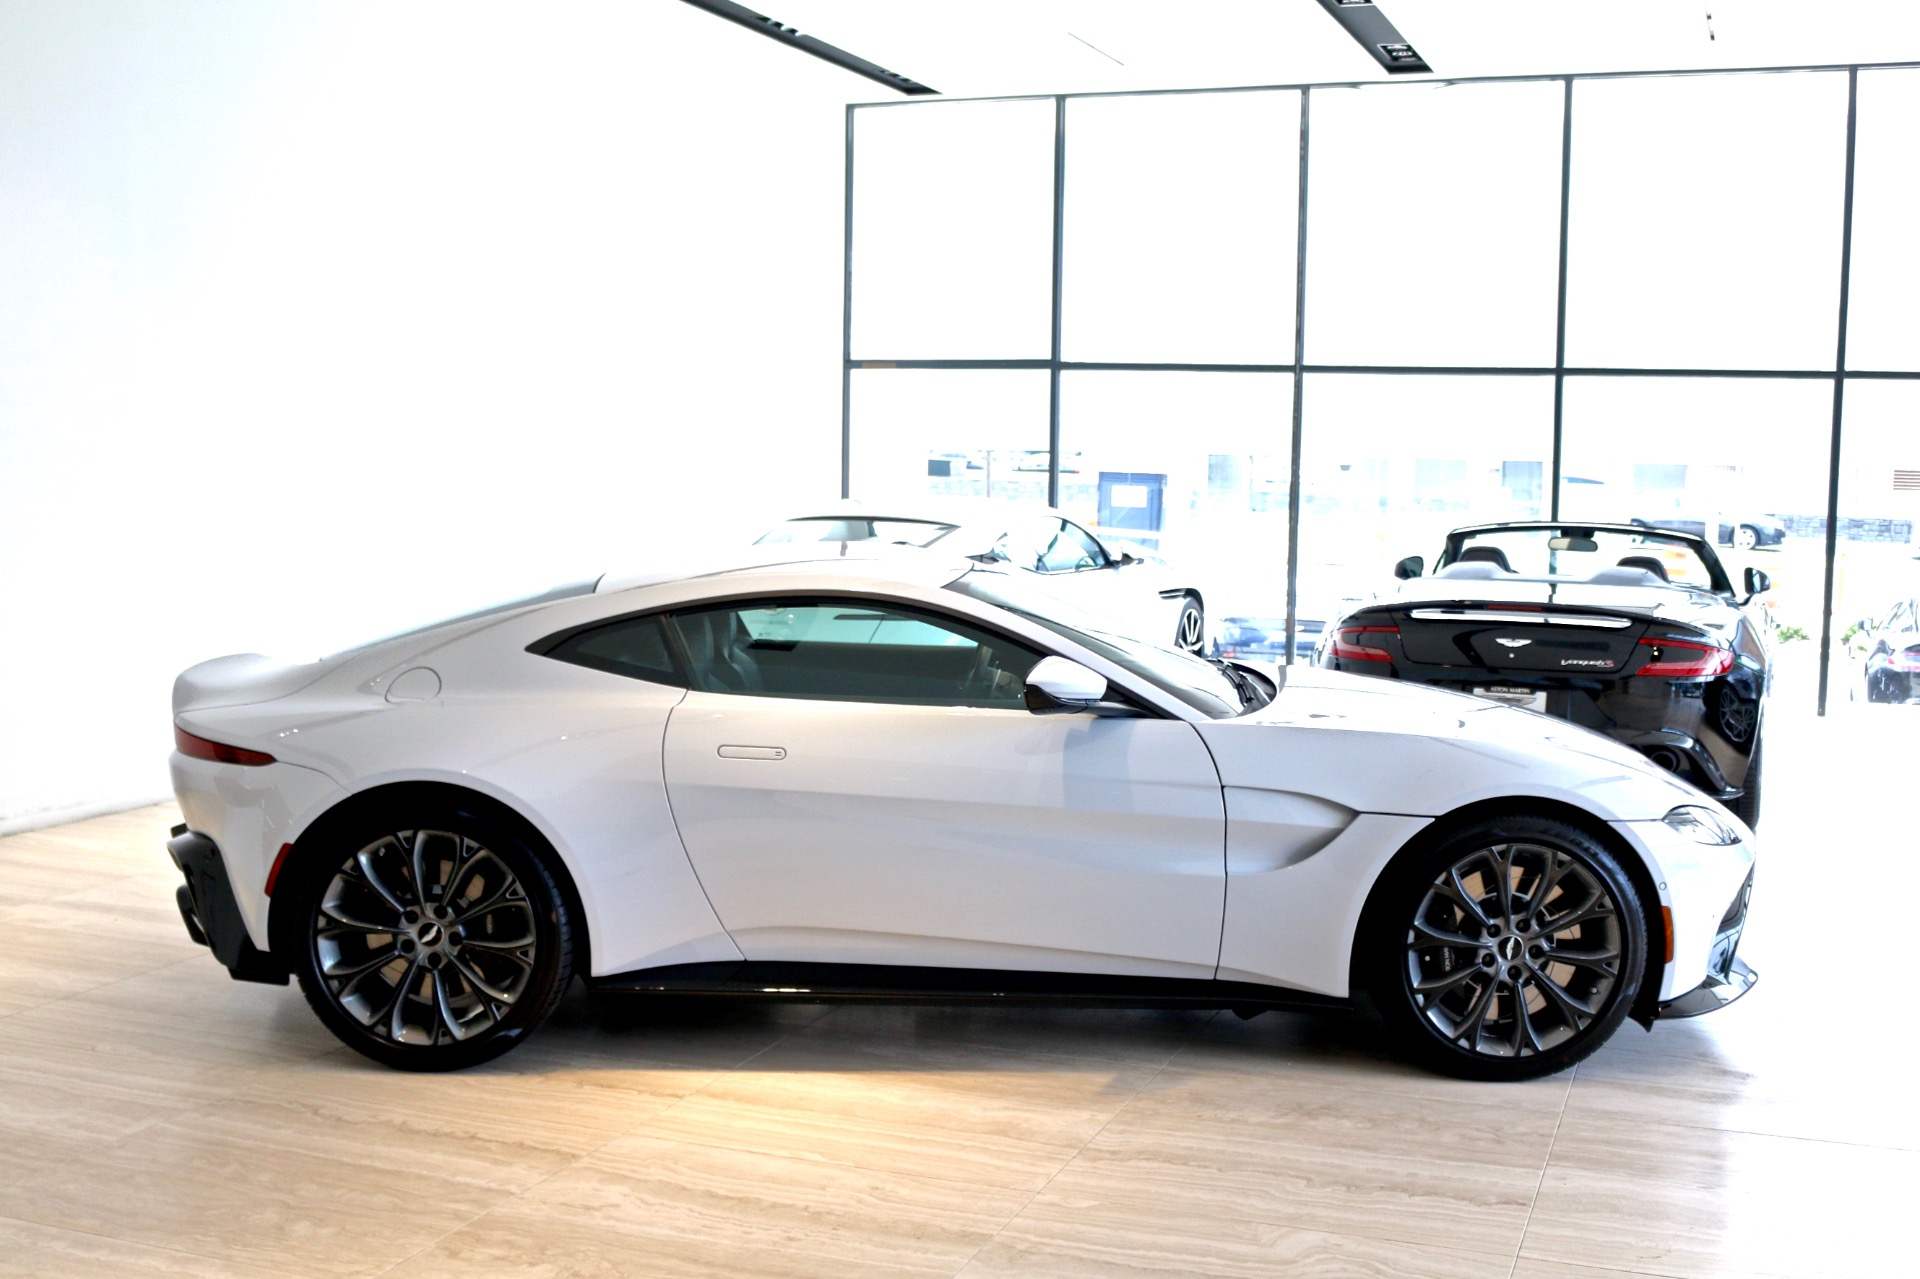 2019 Aston Martin Vantage Stock 9nn00180 For Sale Near Vienna Va